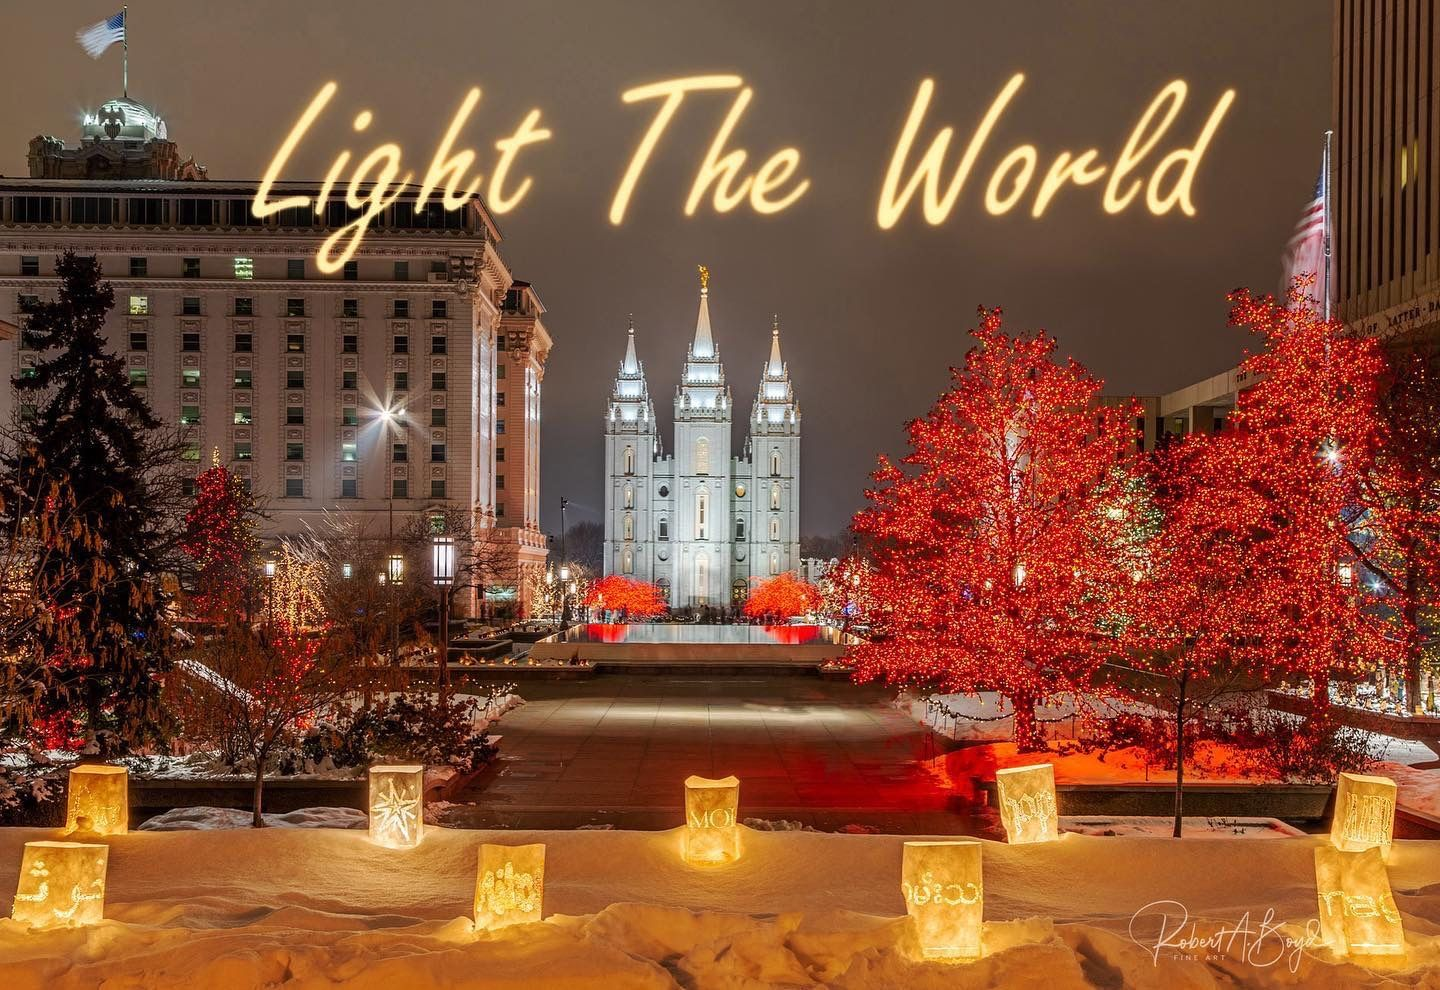 Salt lake temple image by Joyce Hunter on Temples of the